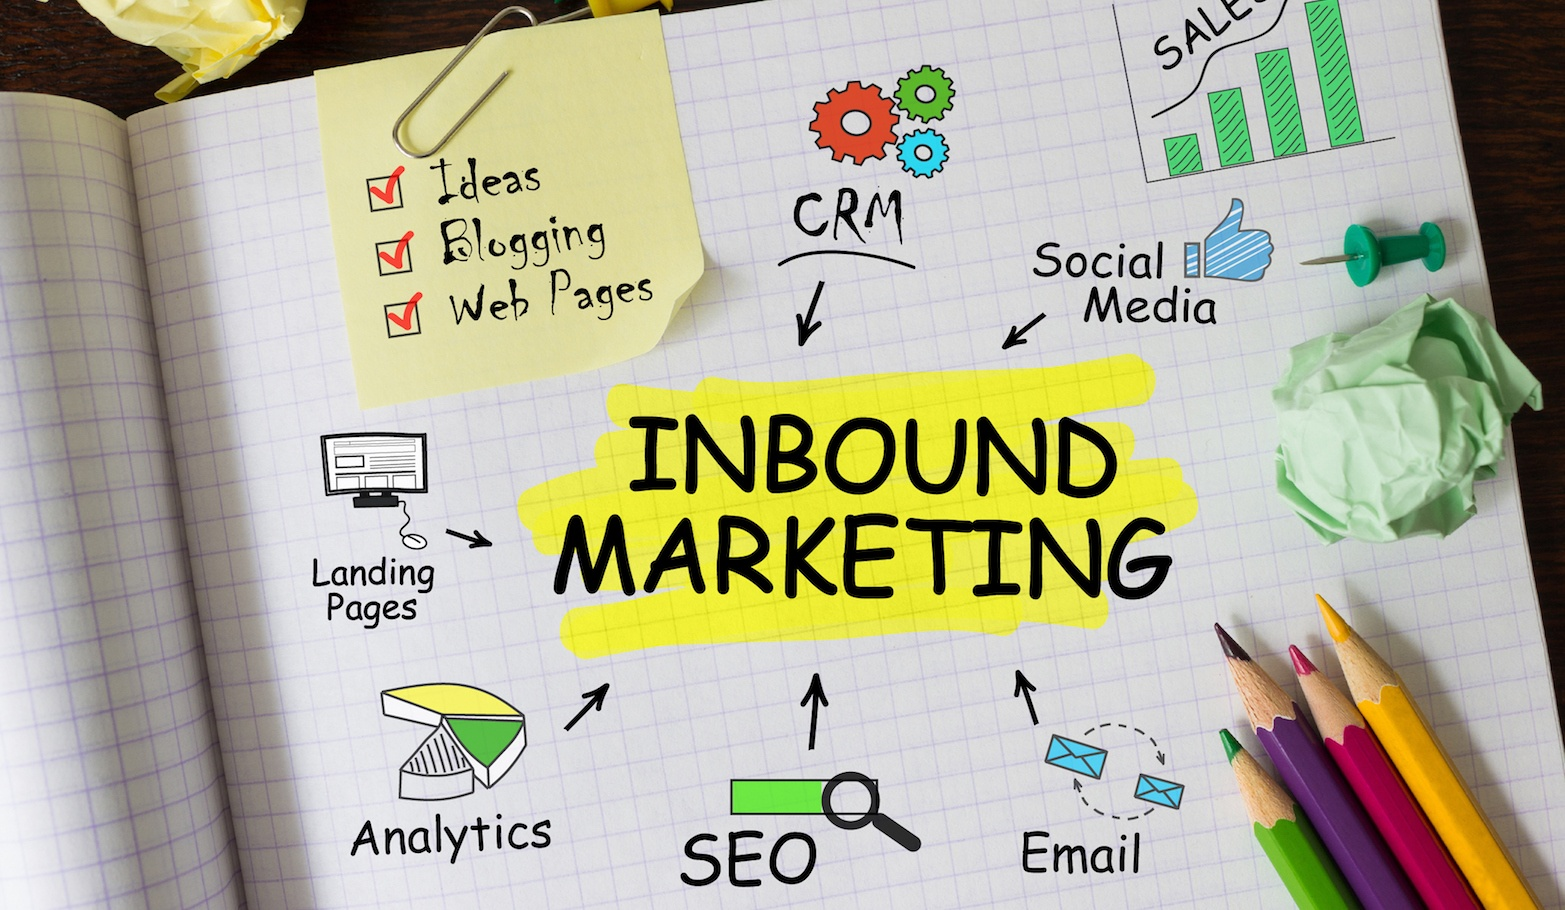 Come-fare-Inbound-Marketing-a-livello-aziendale-blog